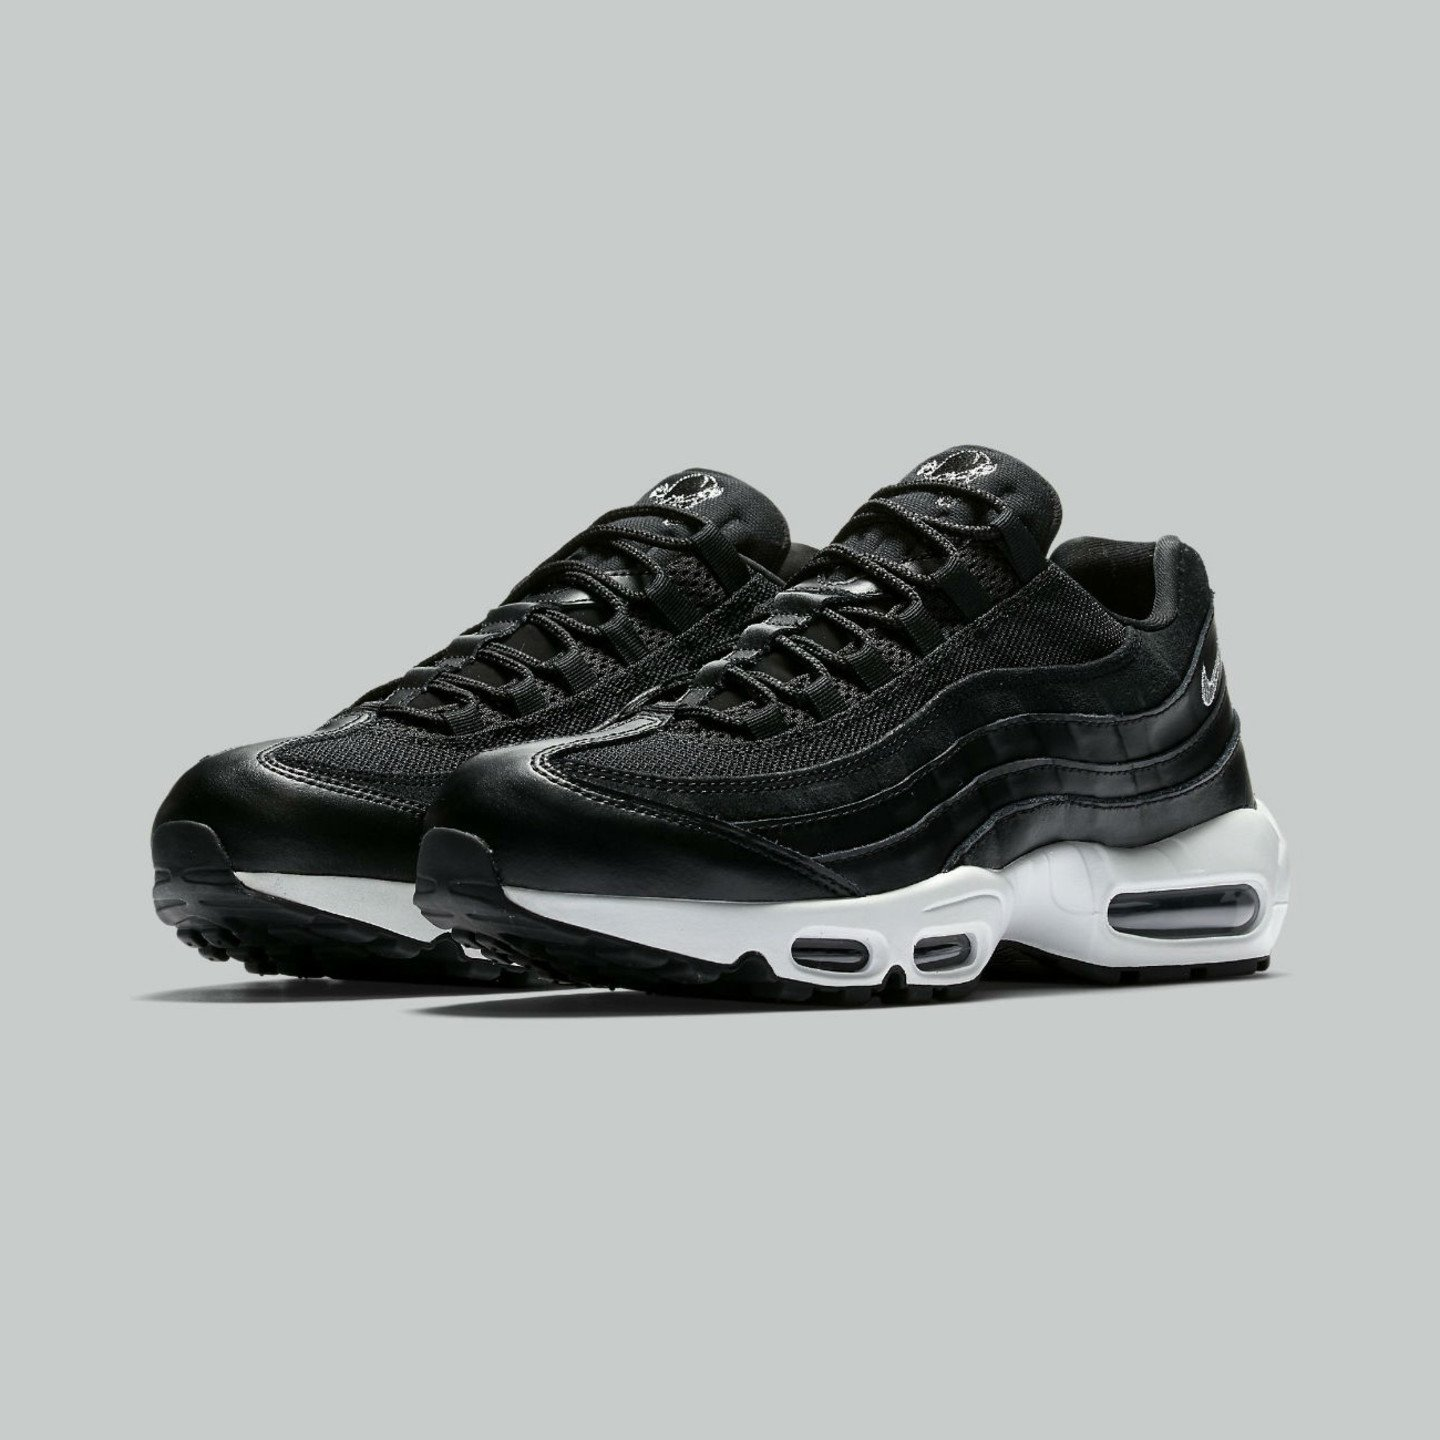 Nike Air Max 95 Premium 'Rebel Skulls' Black / Chrome / Off-White 538416-008